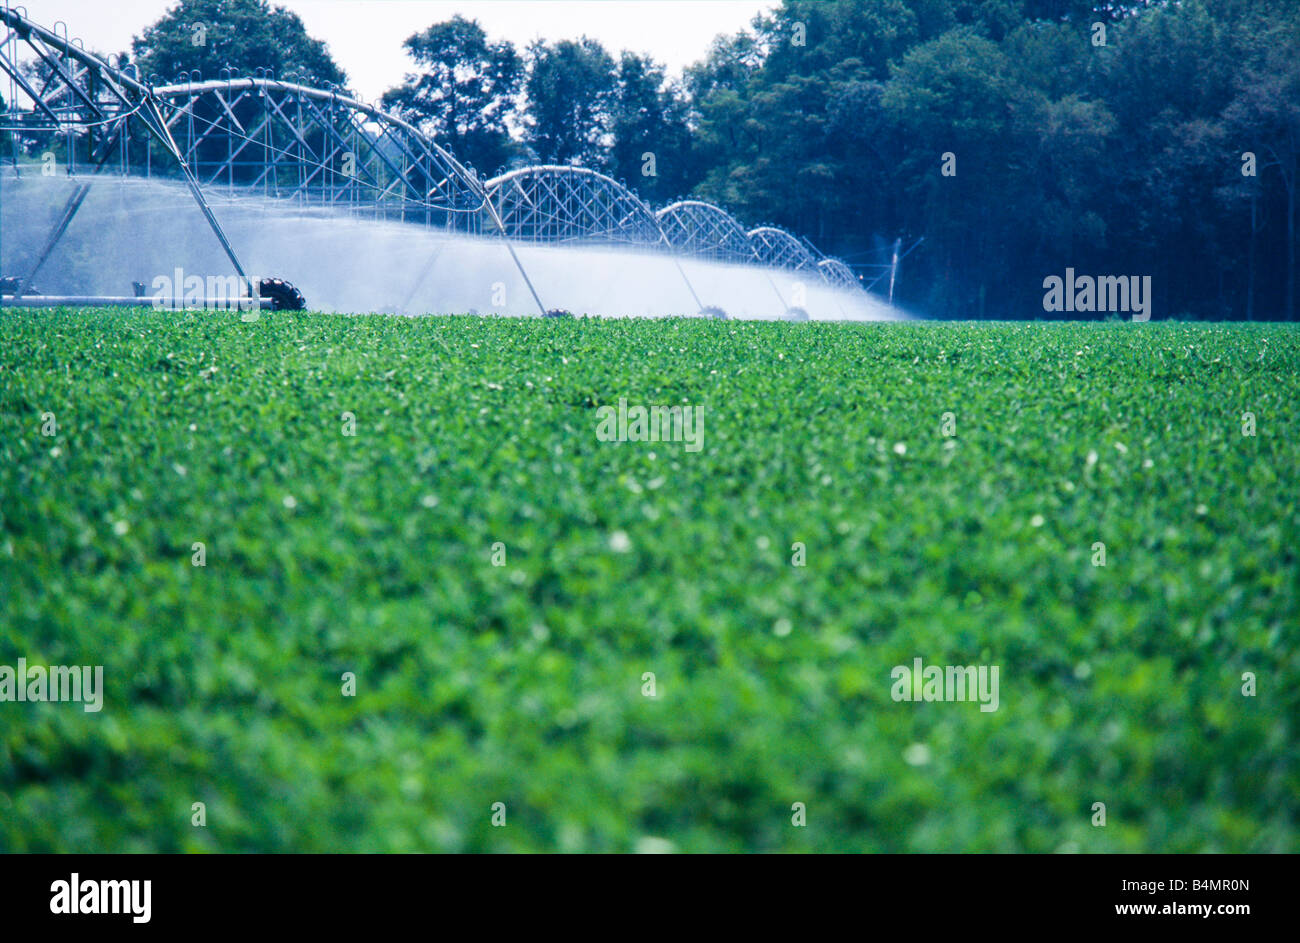 Irrigation Of Farm Fields, With Rows Of Crops, Georgia Stock Photo ...